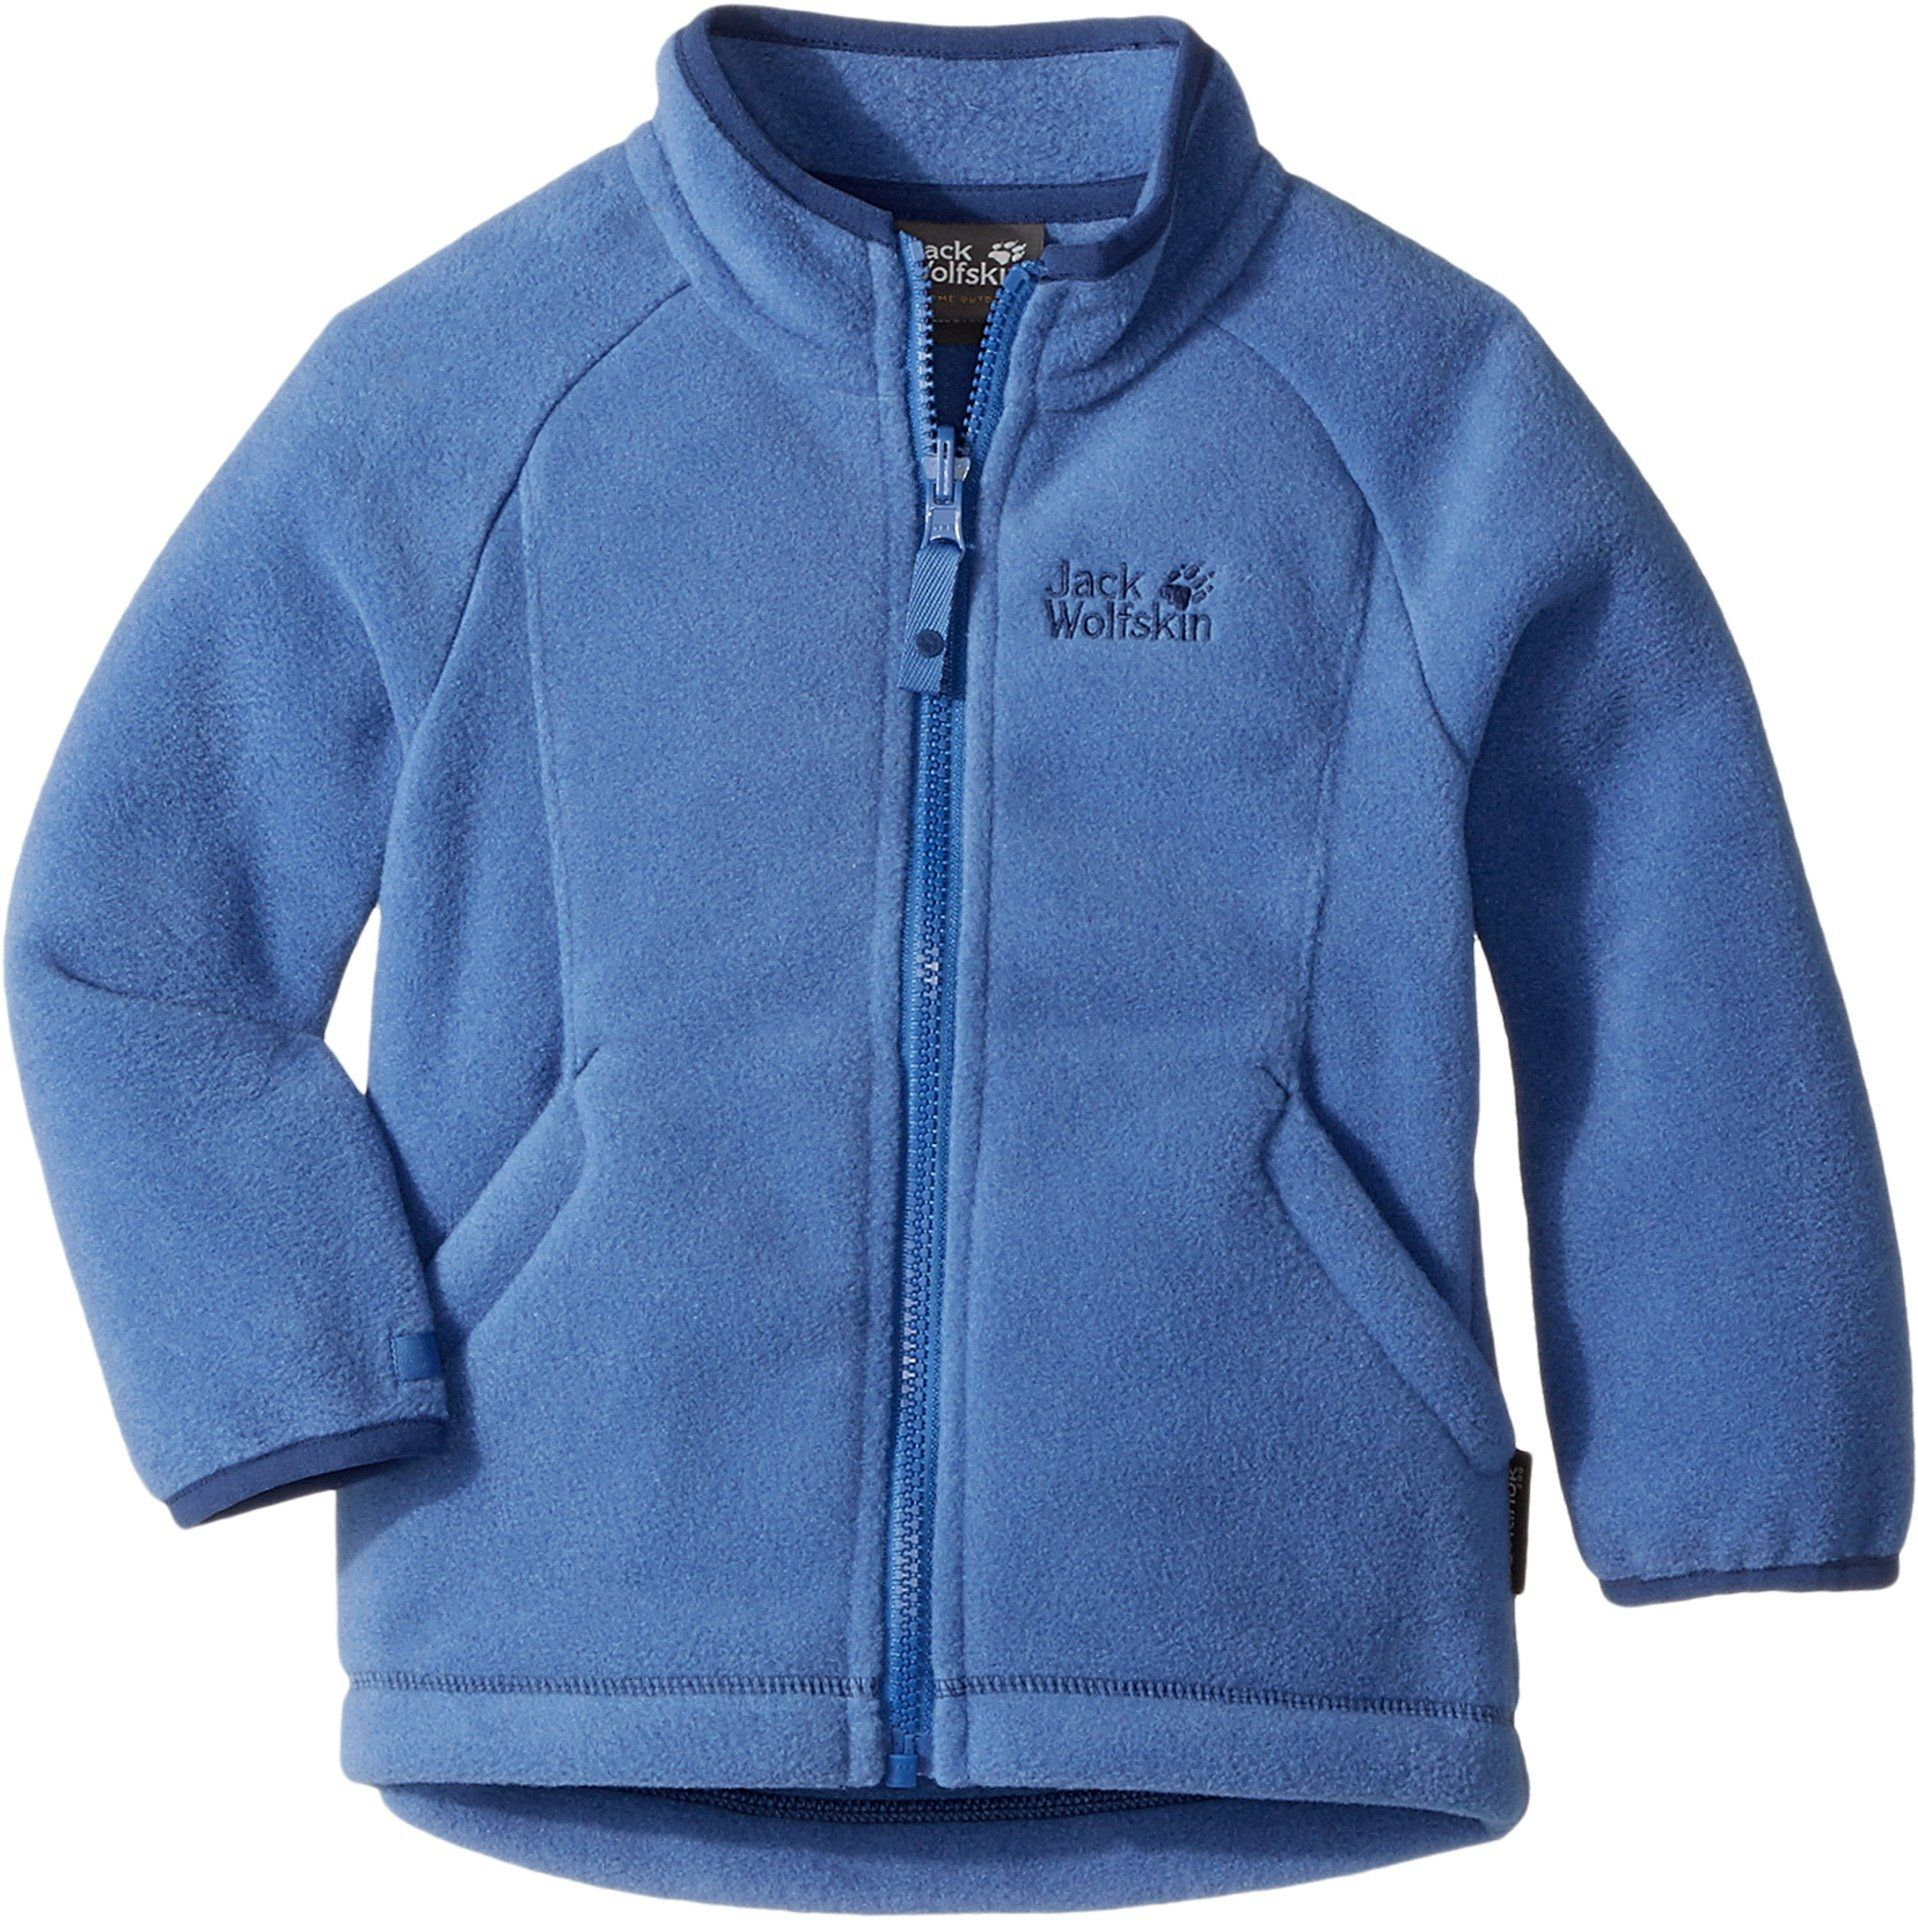 29e83947c Jack Wolfskin Kids Baby Boy s Thunder Bay Fleece (Infant Toddler ...